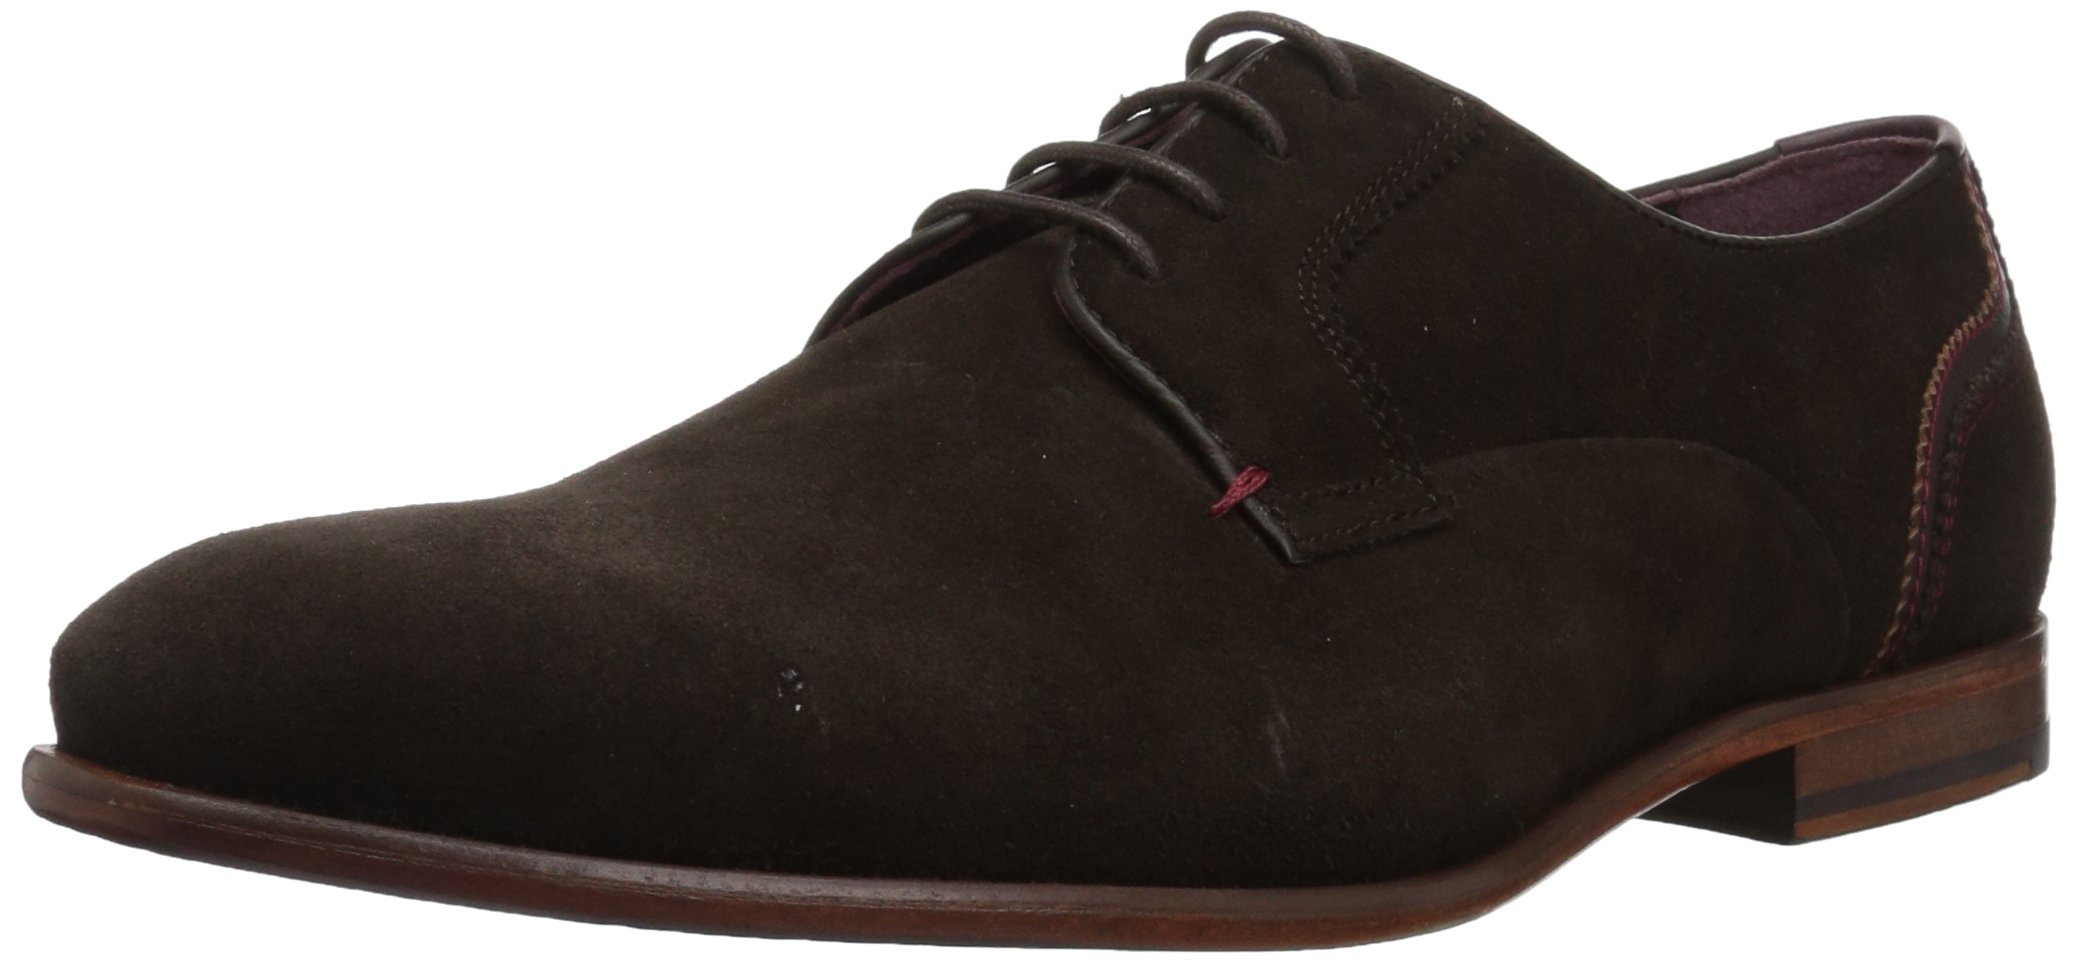 Ted Baker Men's Iront Oxford, Brown, 10.5 D(M) US